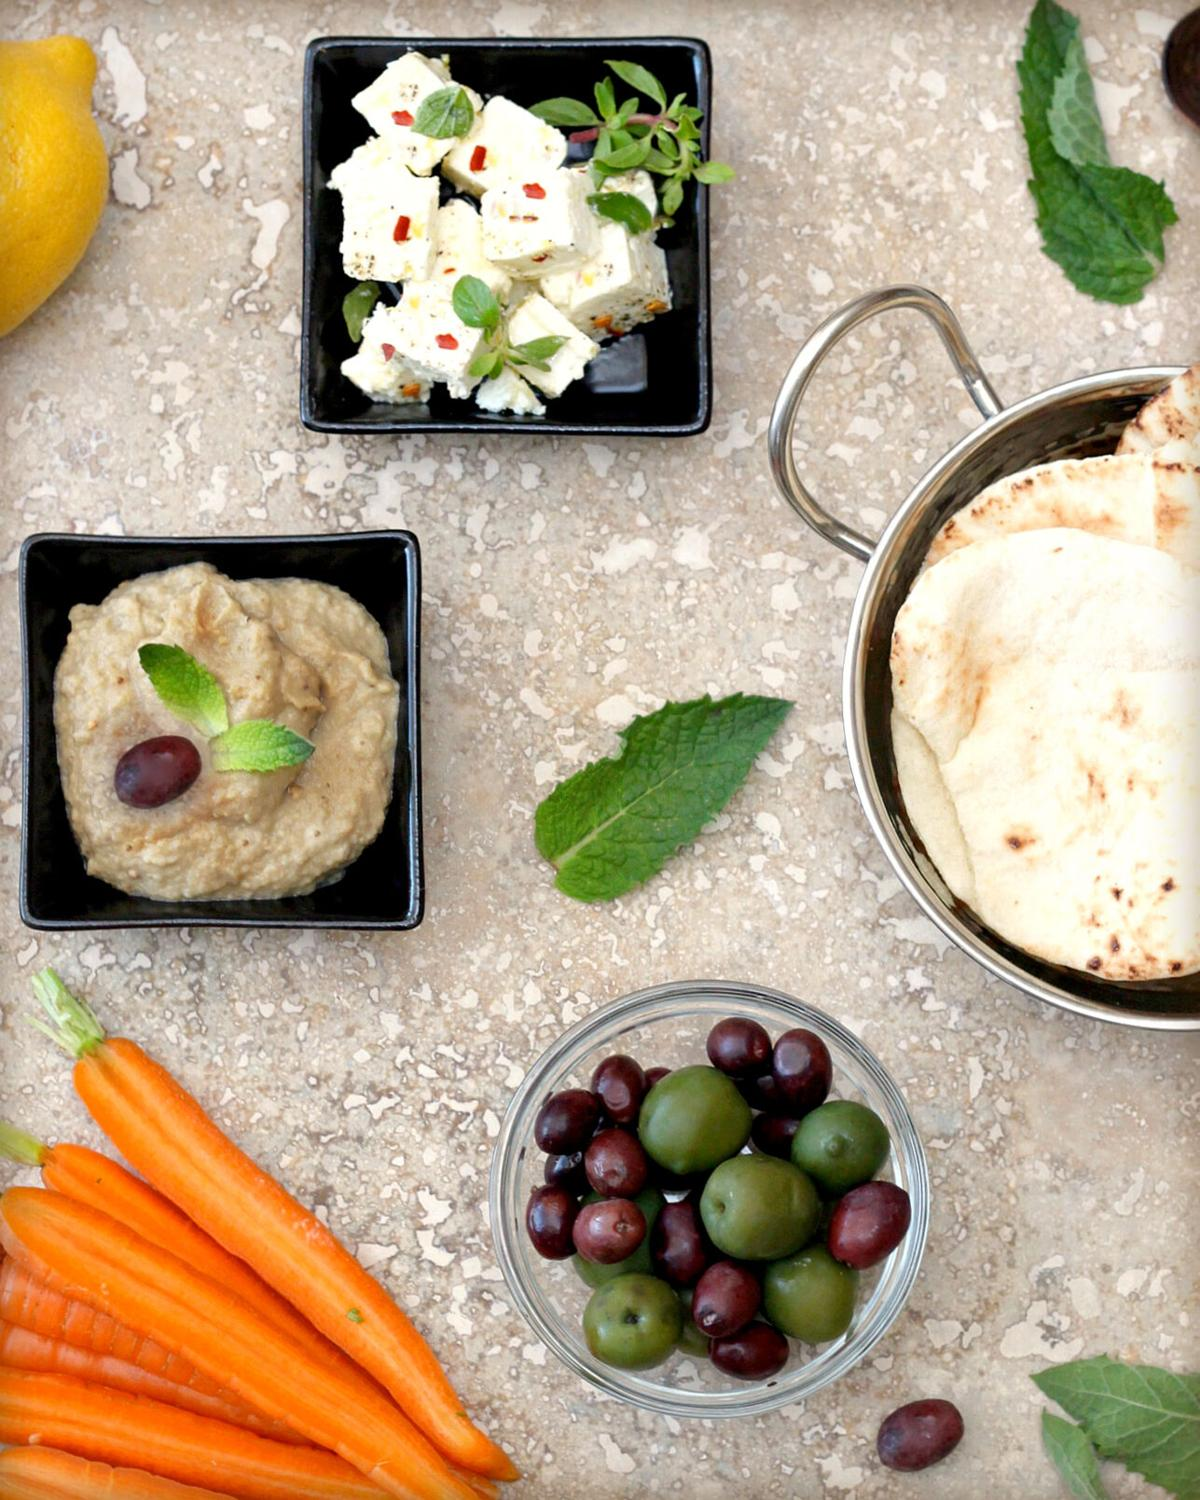 TasteFood: Mediterranean mezze represent a tasty way to start a meal |  Dining | journalnow.com